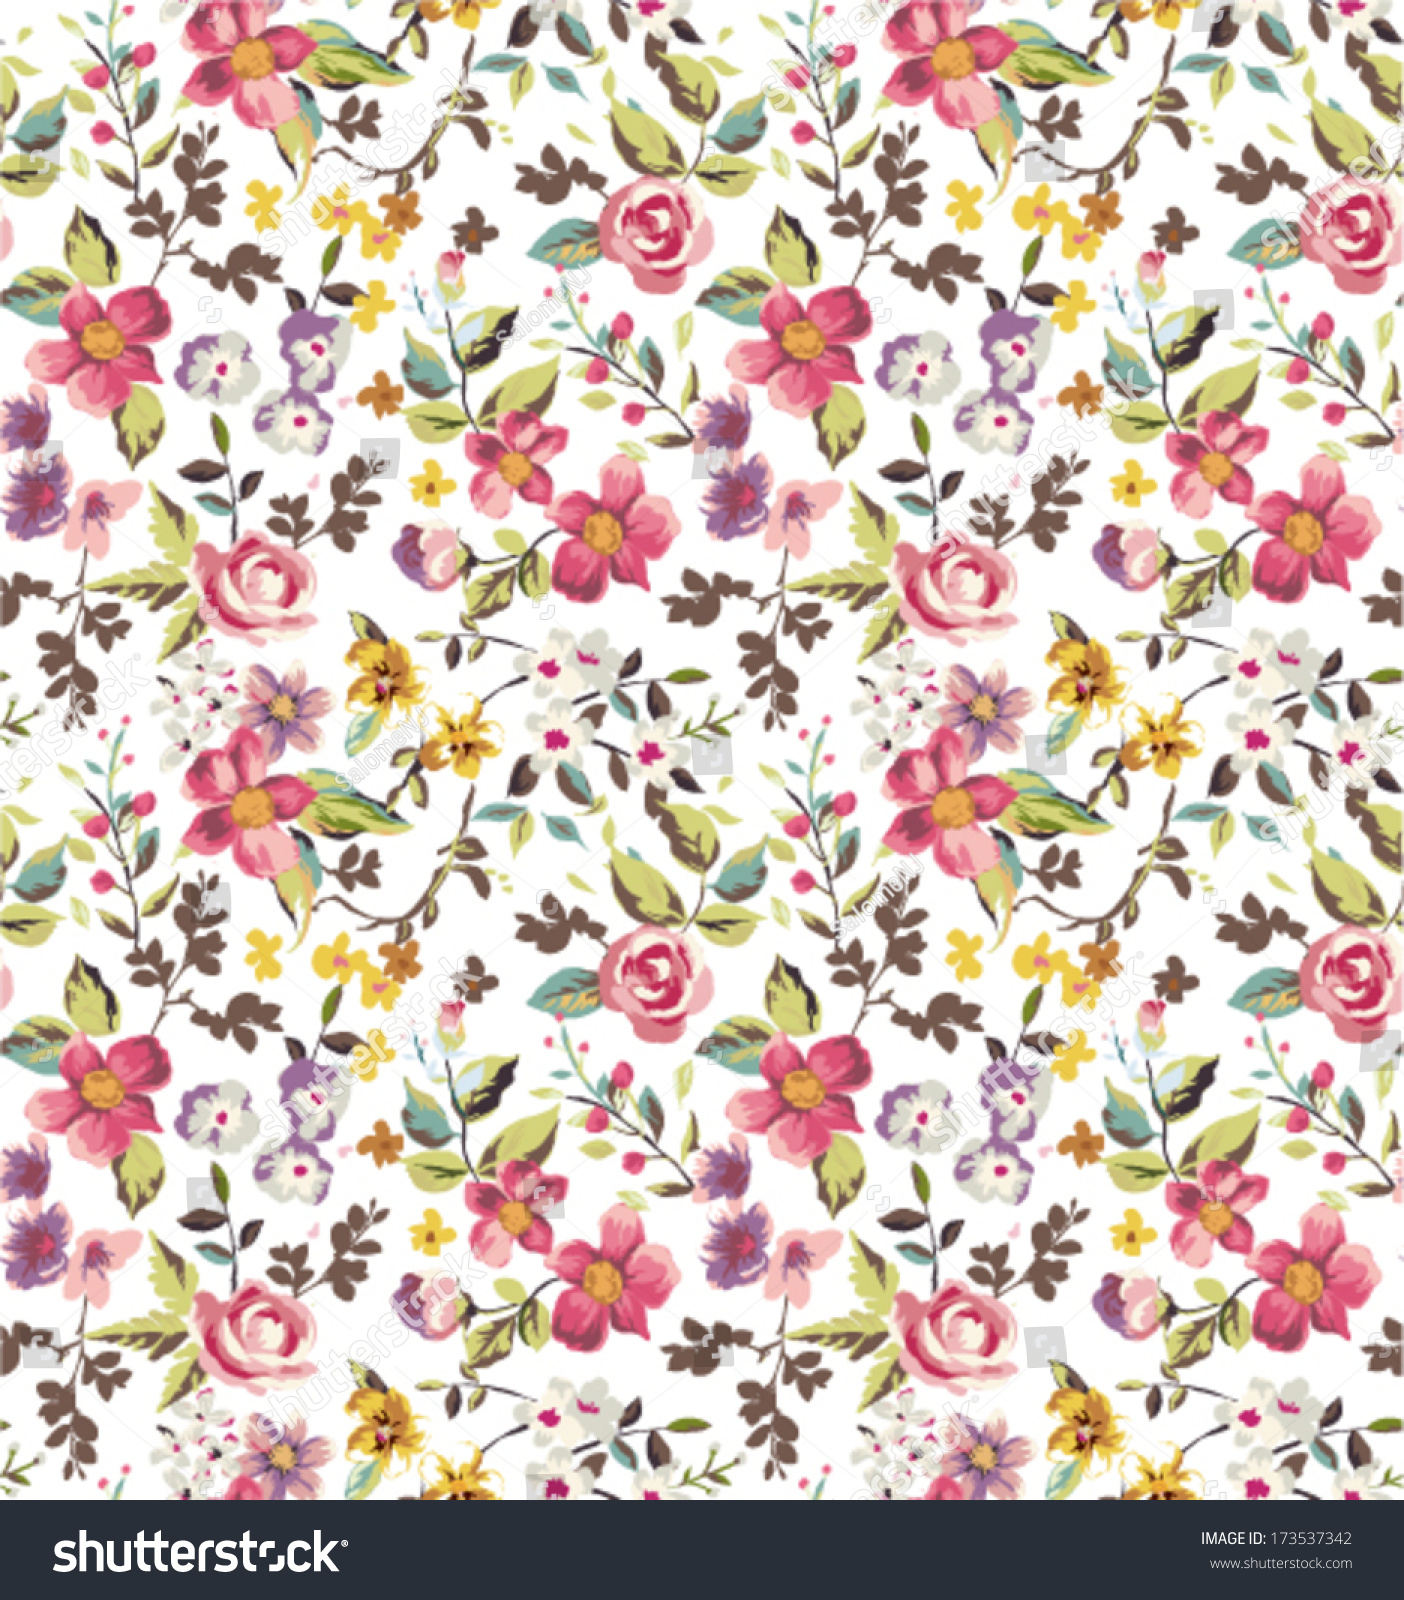 Pink floral seamless vector background floral hrysanthemum seamless - Seamless Tiny Flowers Floral Vector Pattern Background